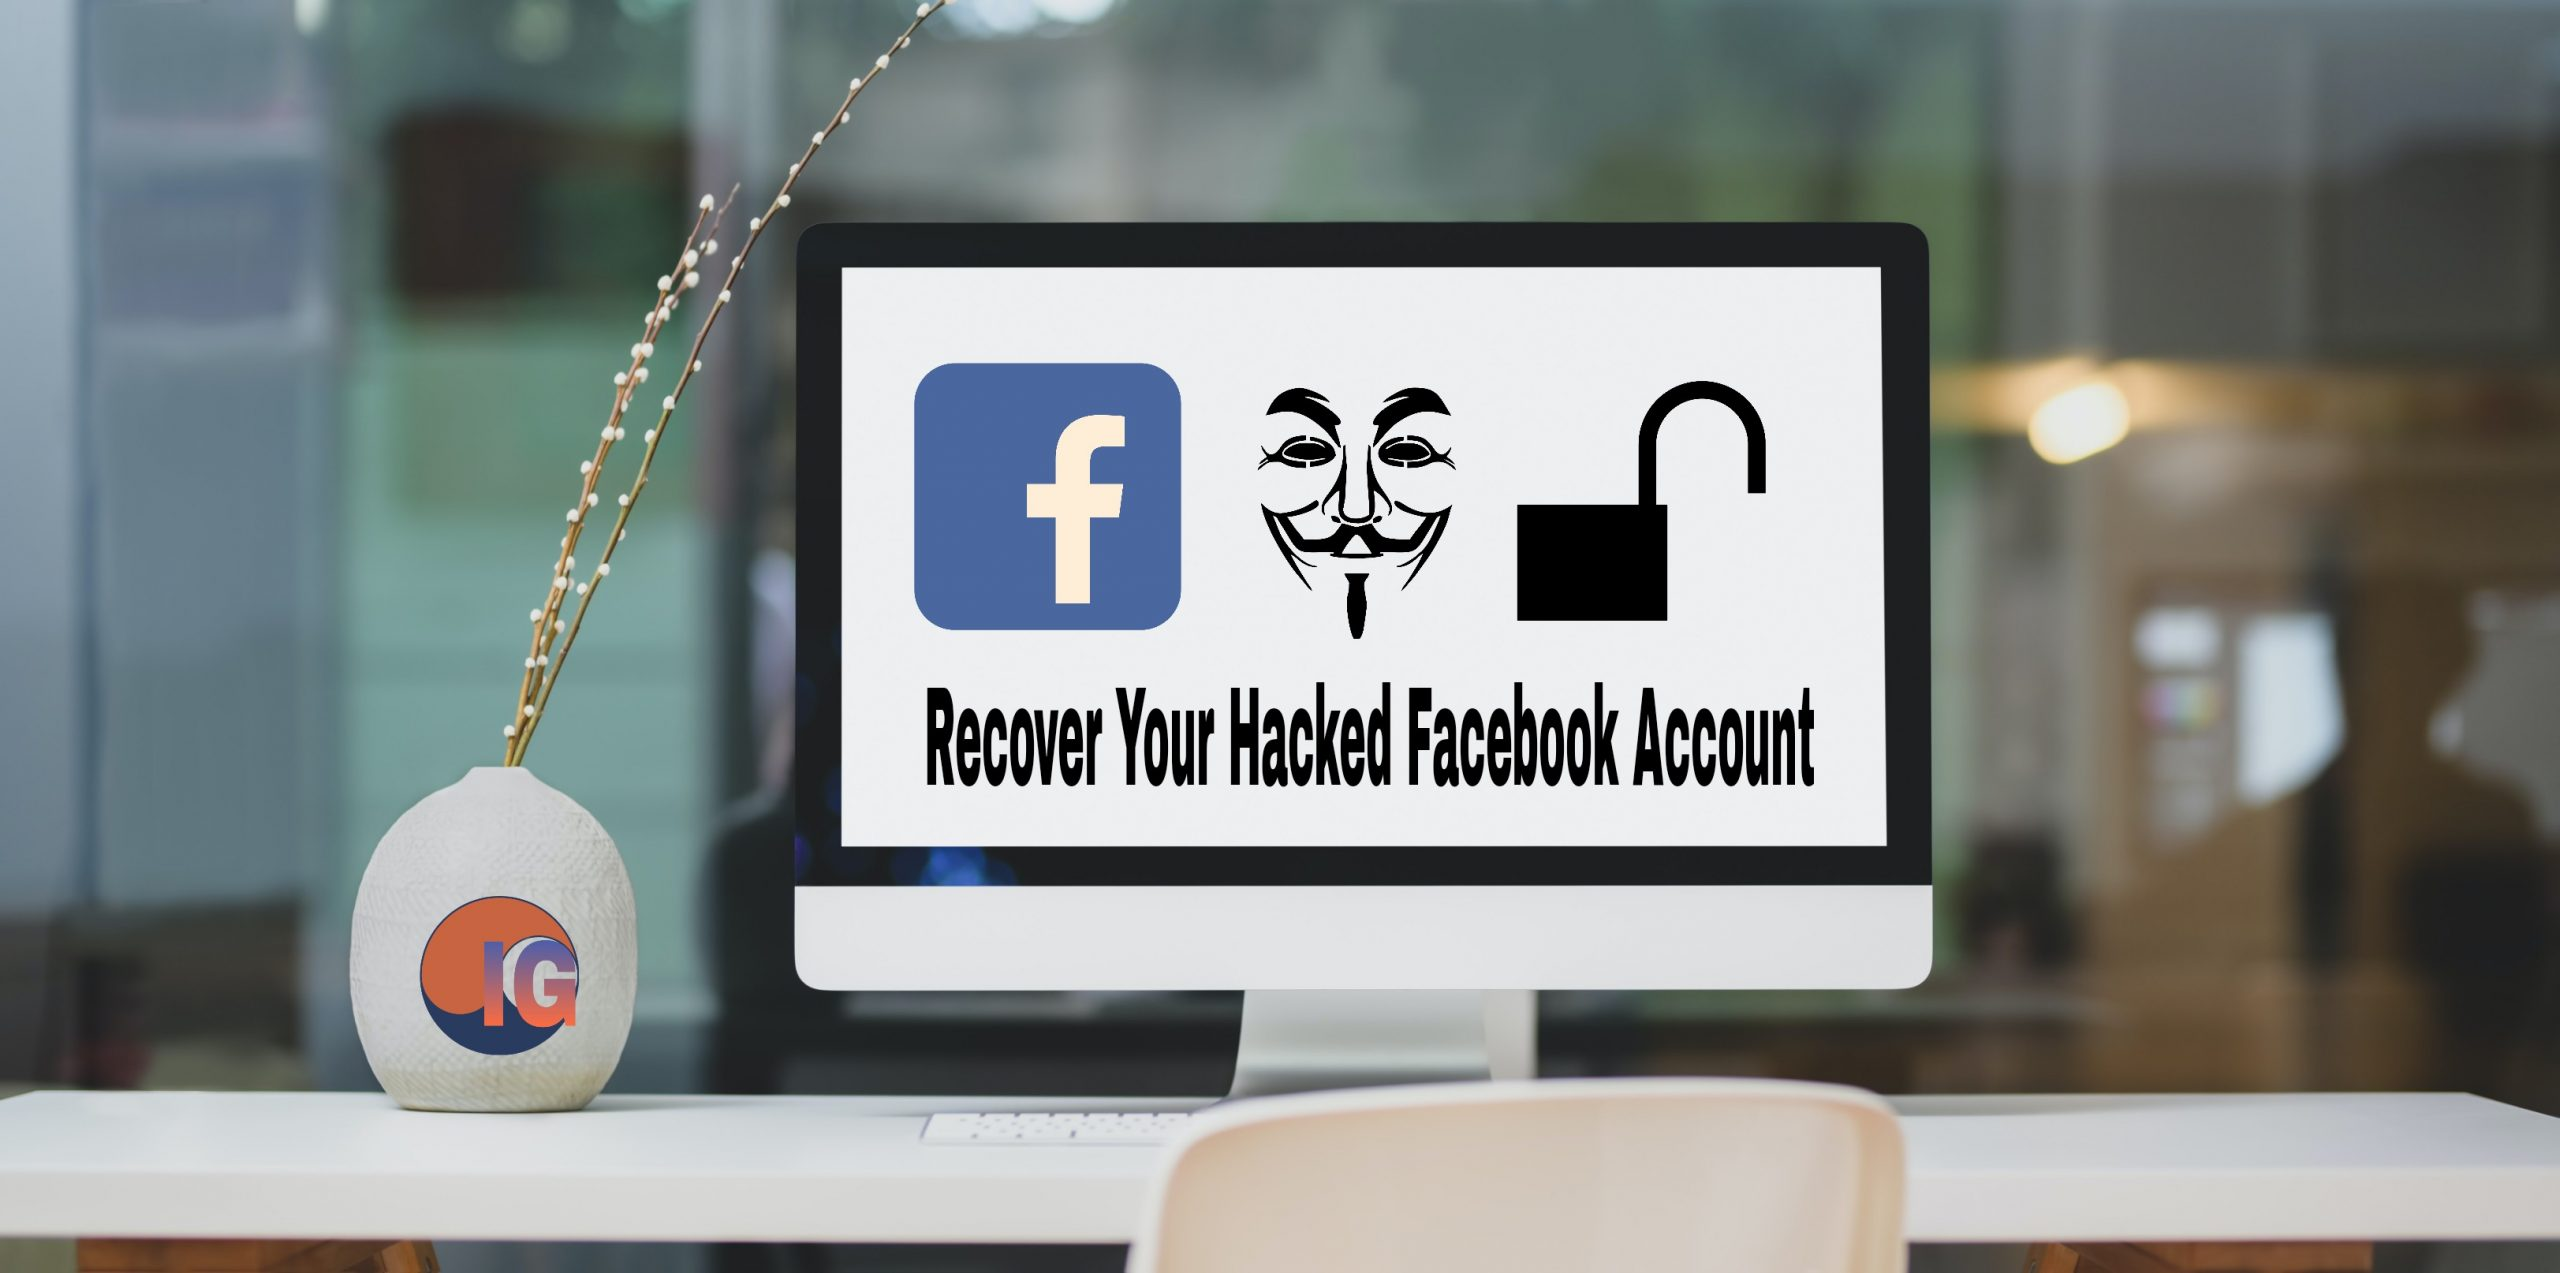 How To Recover Hacked Facebook Account Without Email/Phone Number